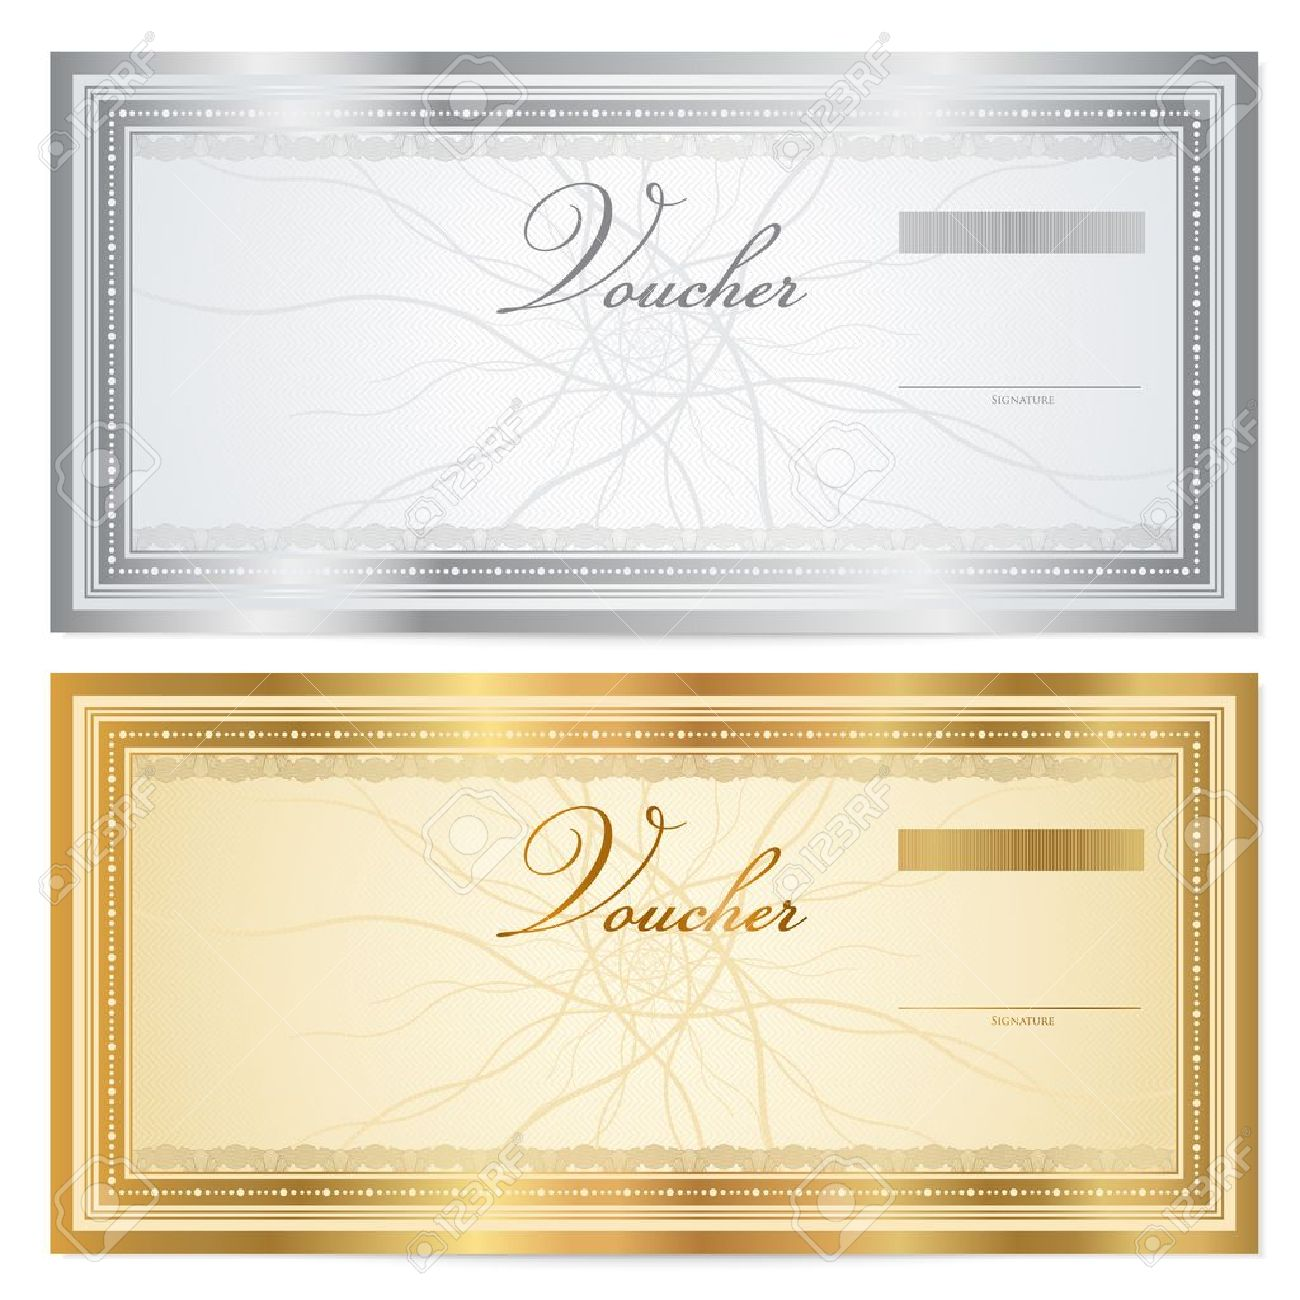 Template For A Voucher gift certificate voucher coupon template – Prize Voucher Template